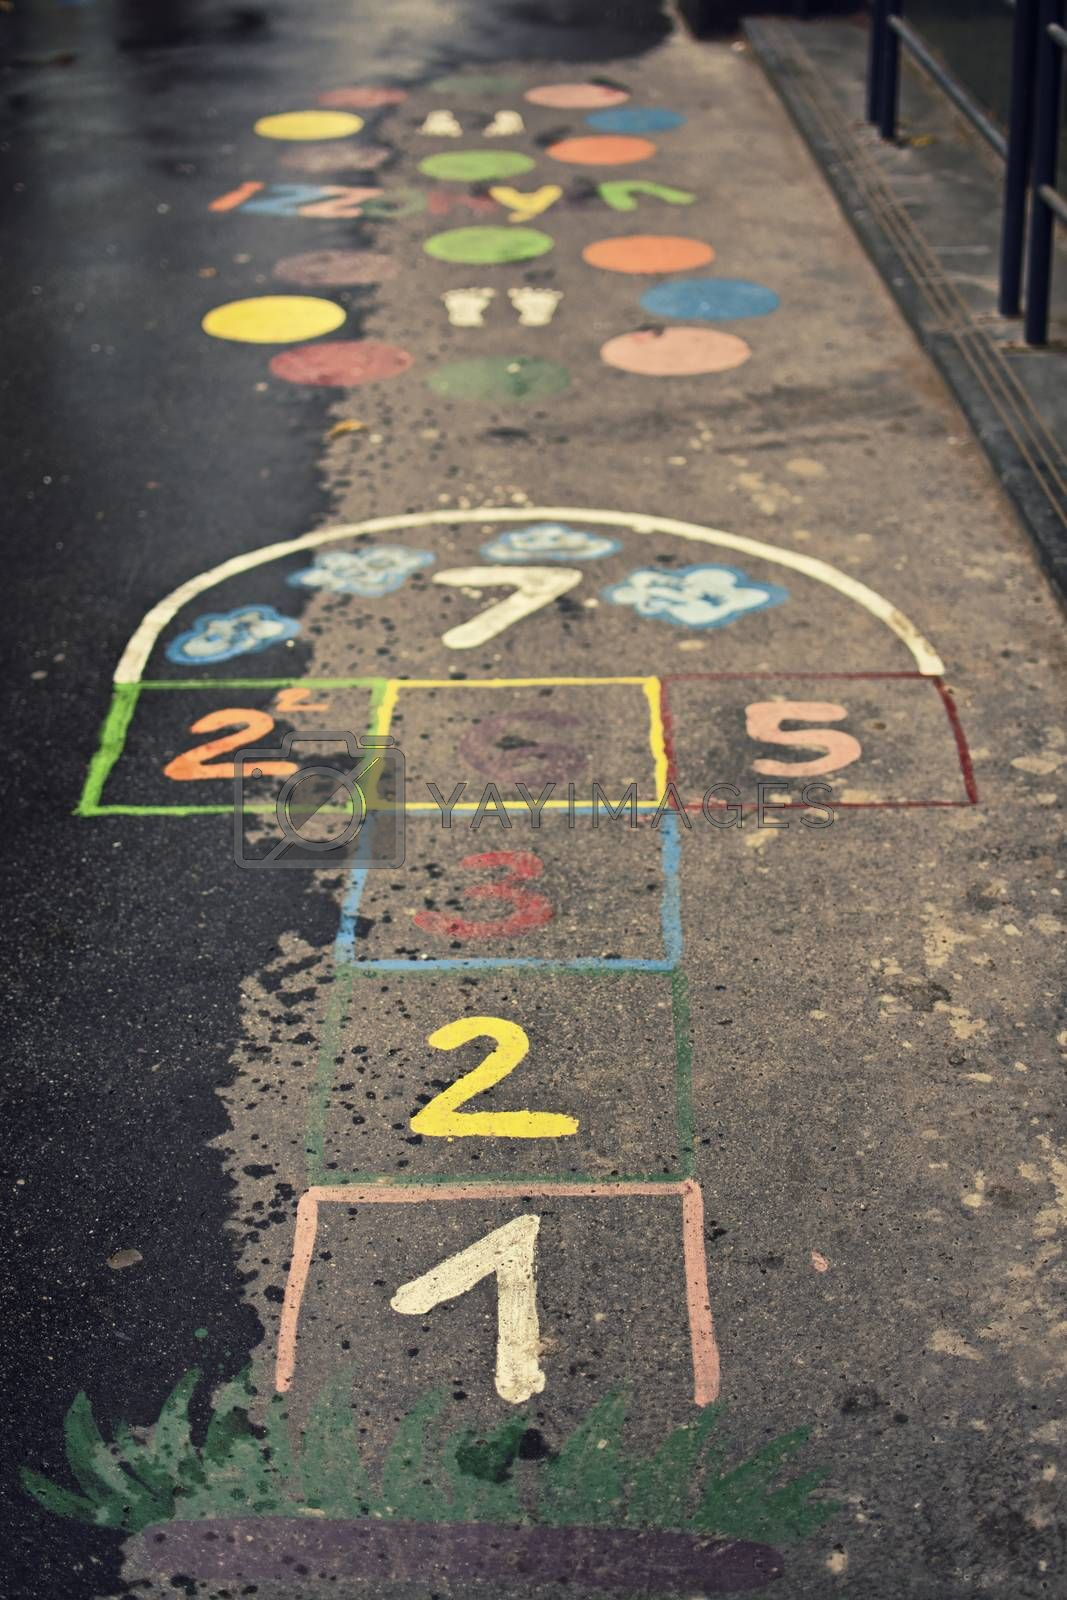 Children's hopscotch game with squares and numbers in different colors on the street.